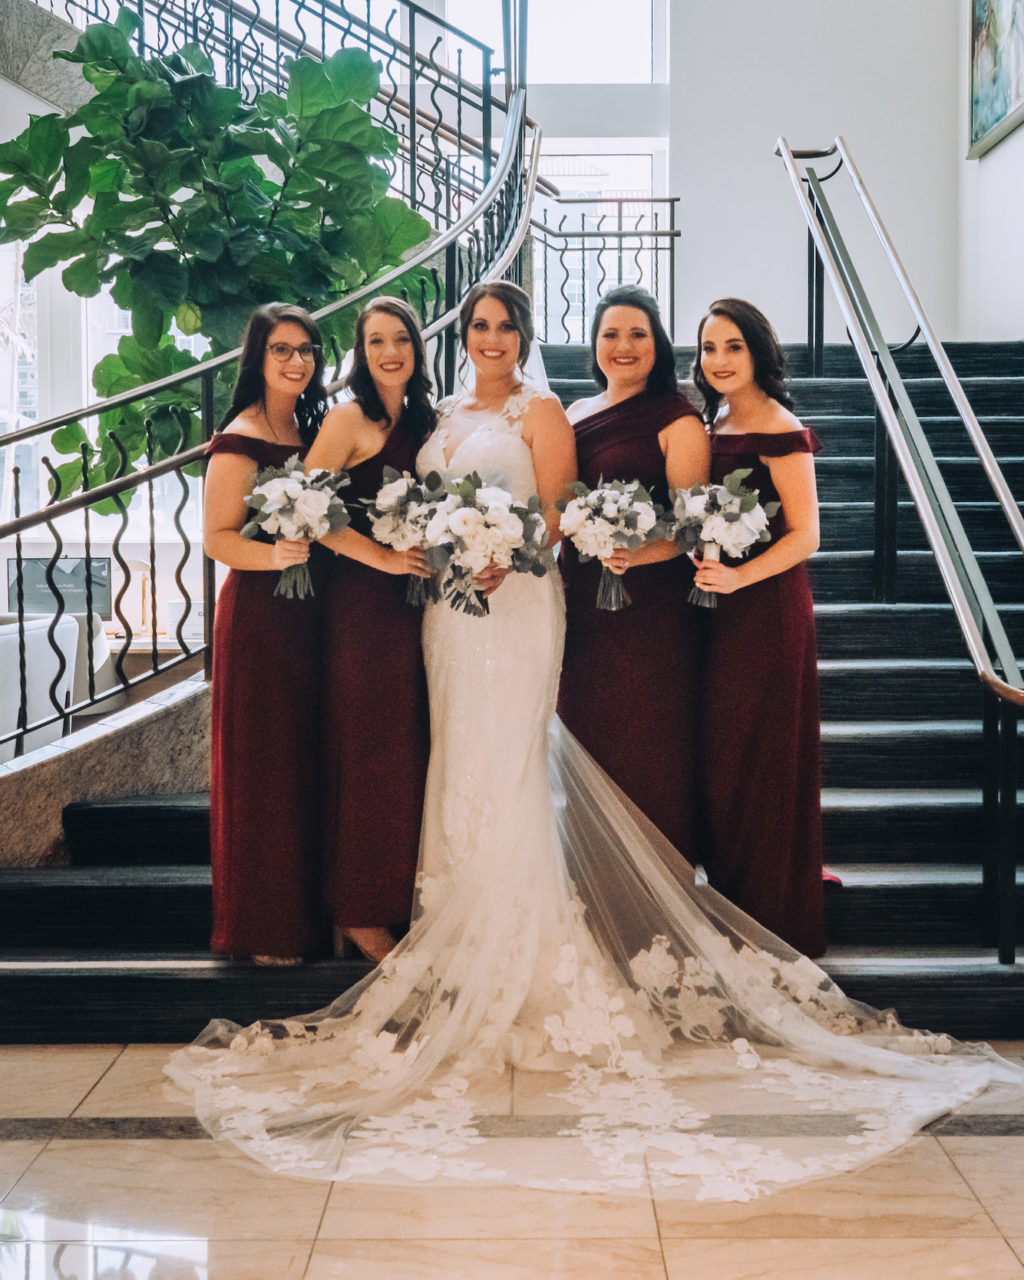 Indoor Bridal Party Portrait on Staircase | Lace Sheath V Neck Illusion Sleeve Bridal Gown Wedding Dress with Sheer Embroidered Train | Simple White Rose Wedding Bouquets with Eucalyptus Greenery | Burgundy Maroon Long Bridesmaid Dresses by David's Bridal | Femme Akoi Beauty Studio | Bonnie Newman Creative